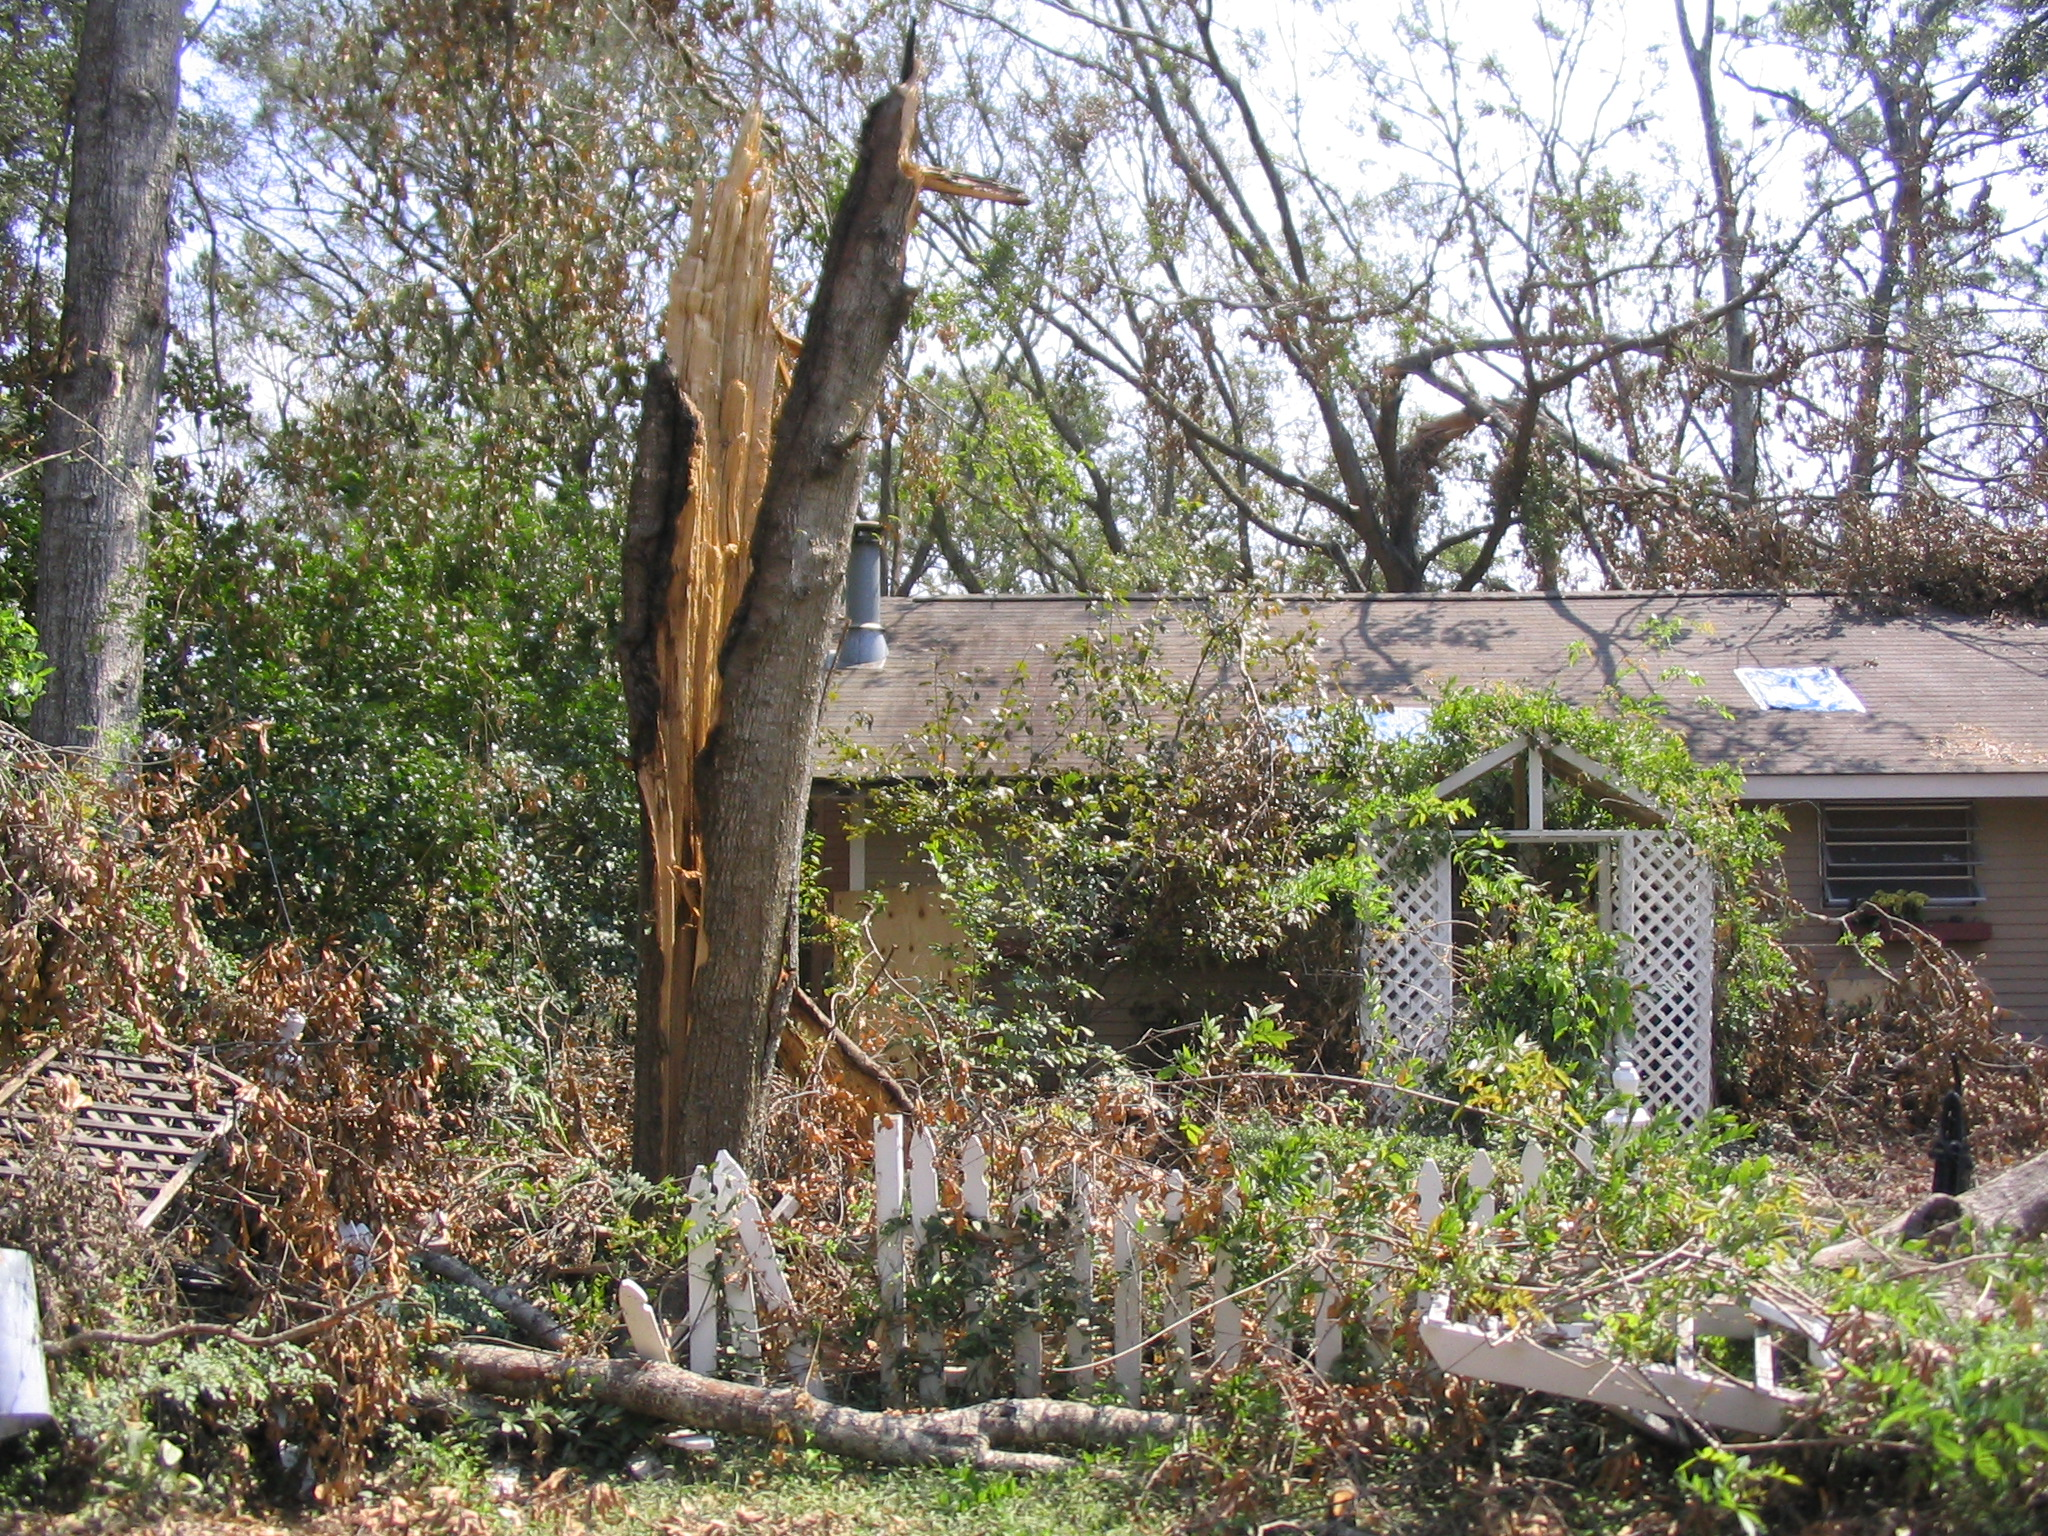 Summer storms and hurricanes are coming: check your trees